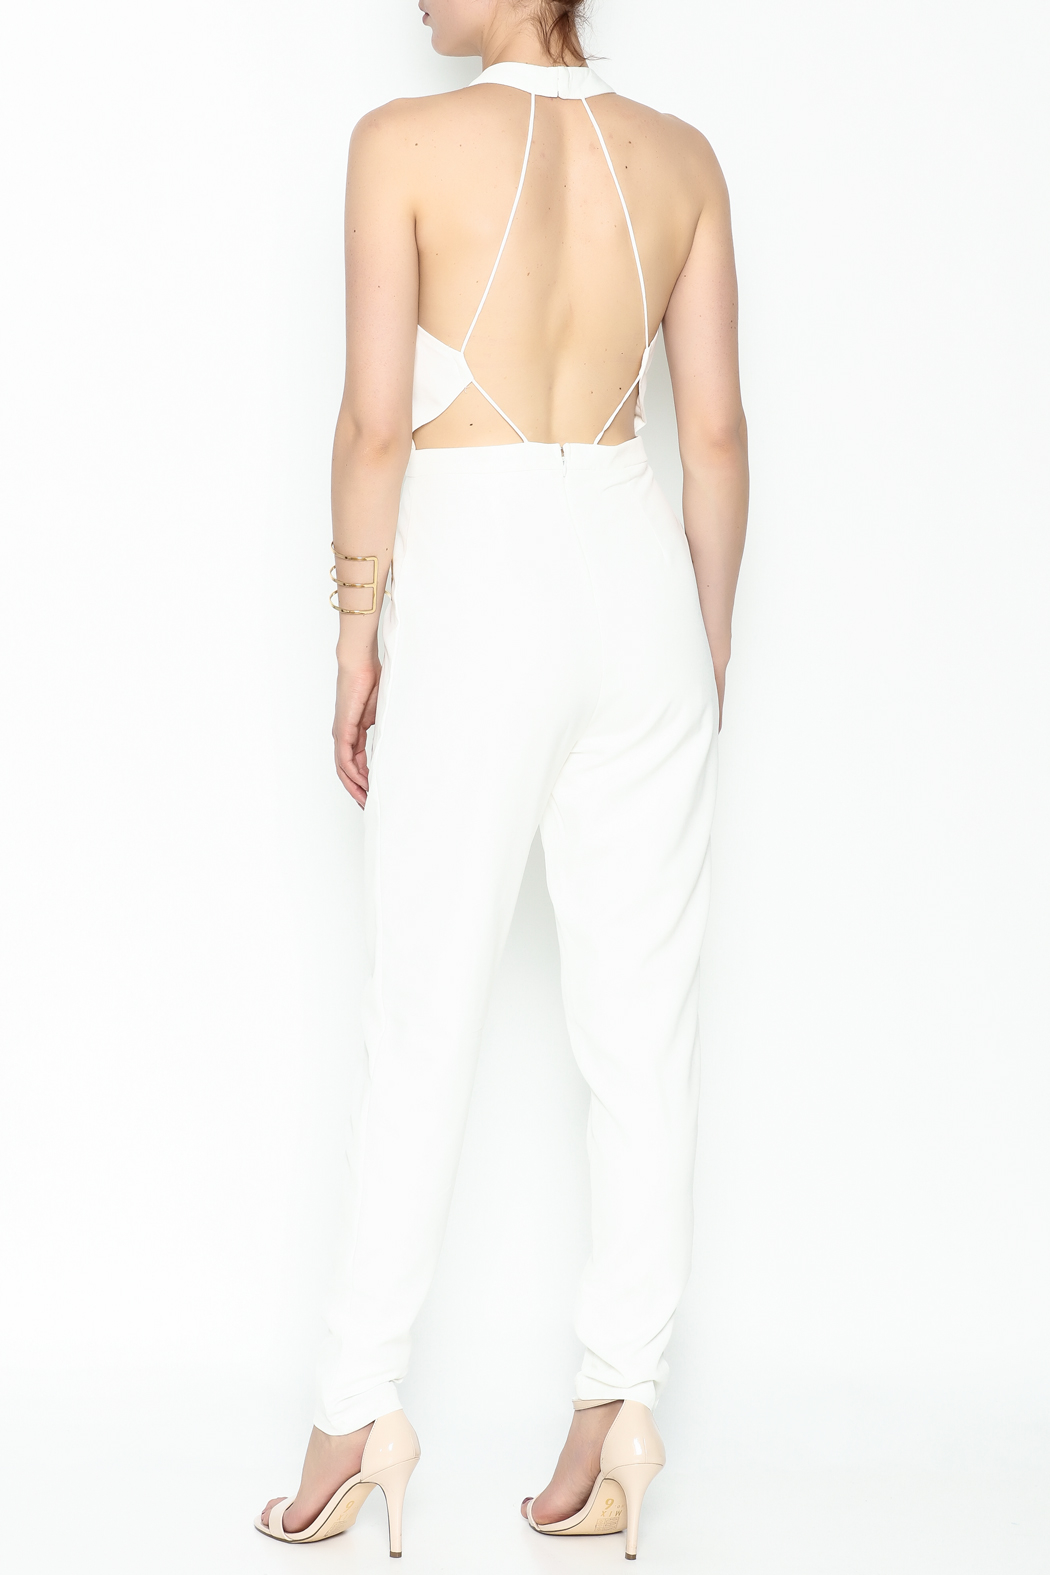 lucca couture White Halter Jumpsuit - Back Cropped Image